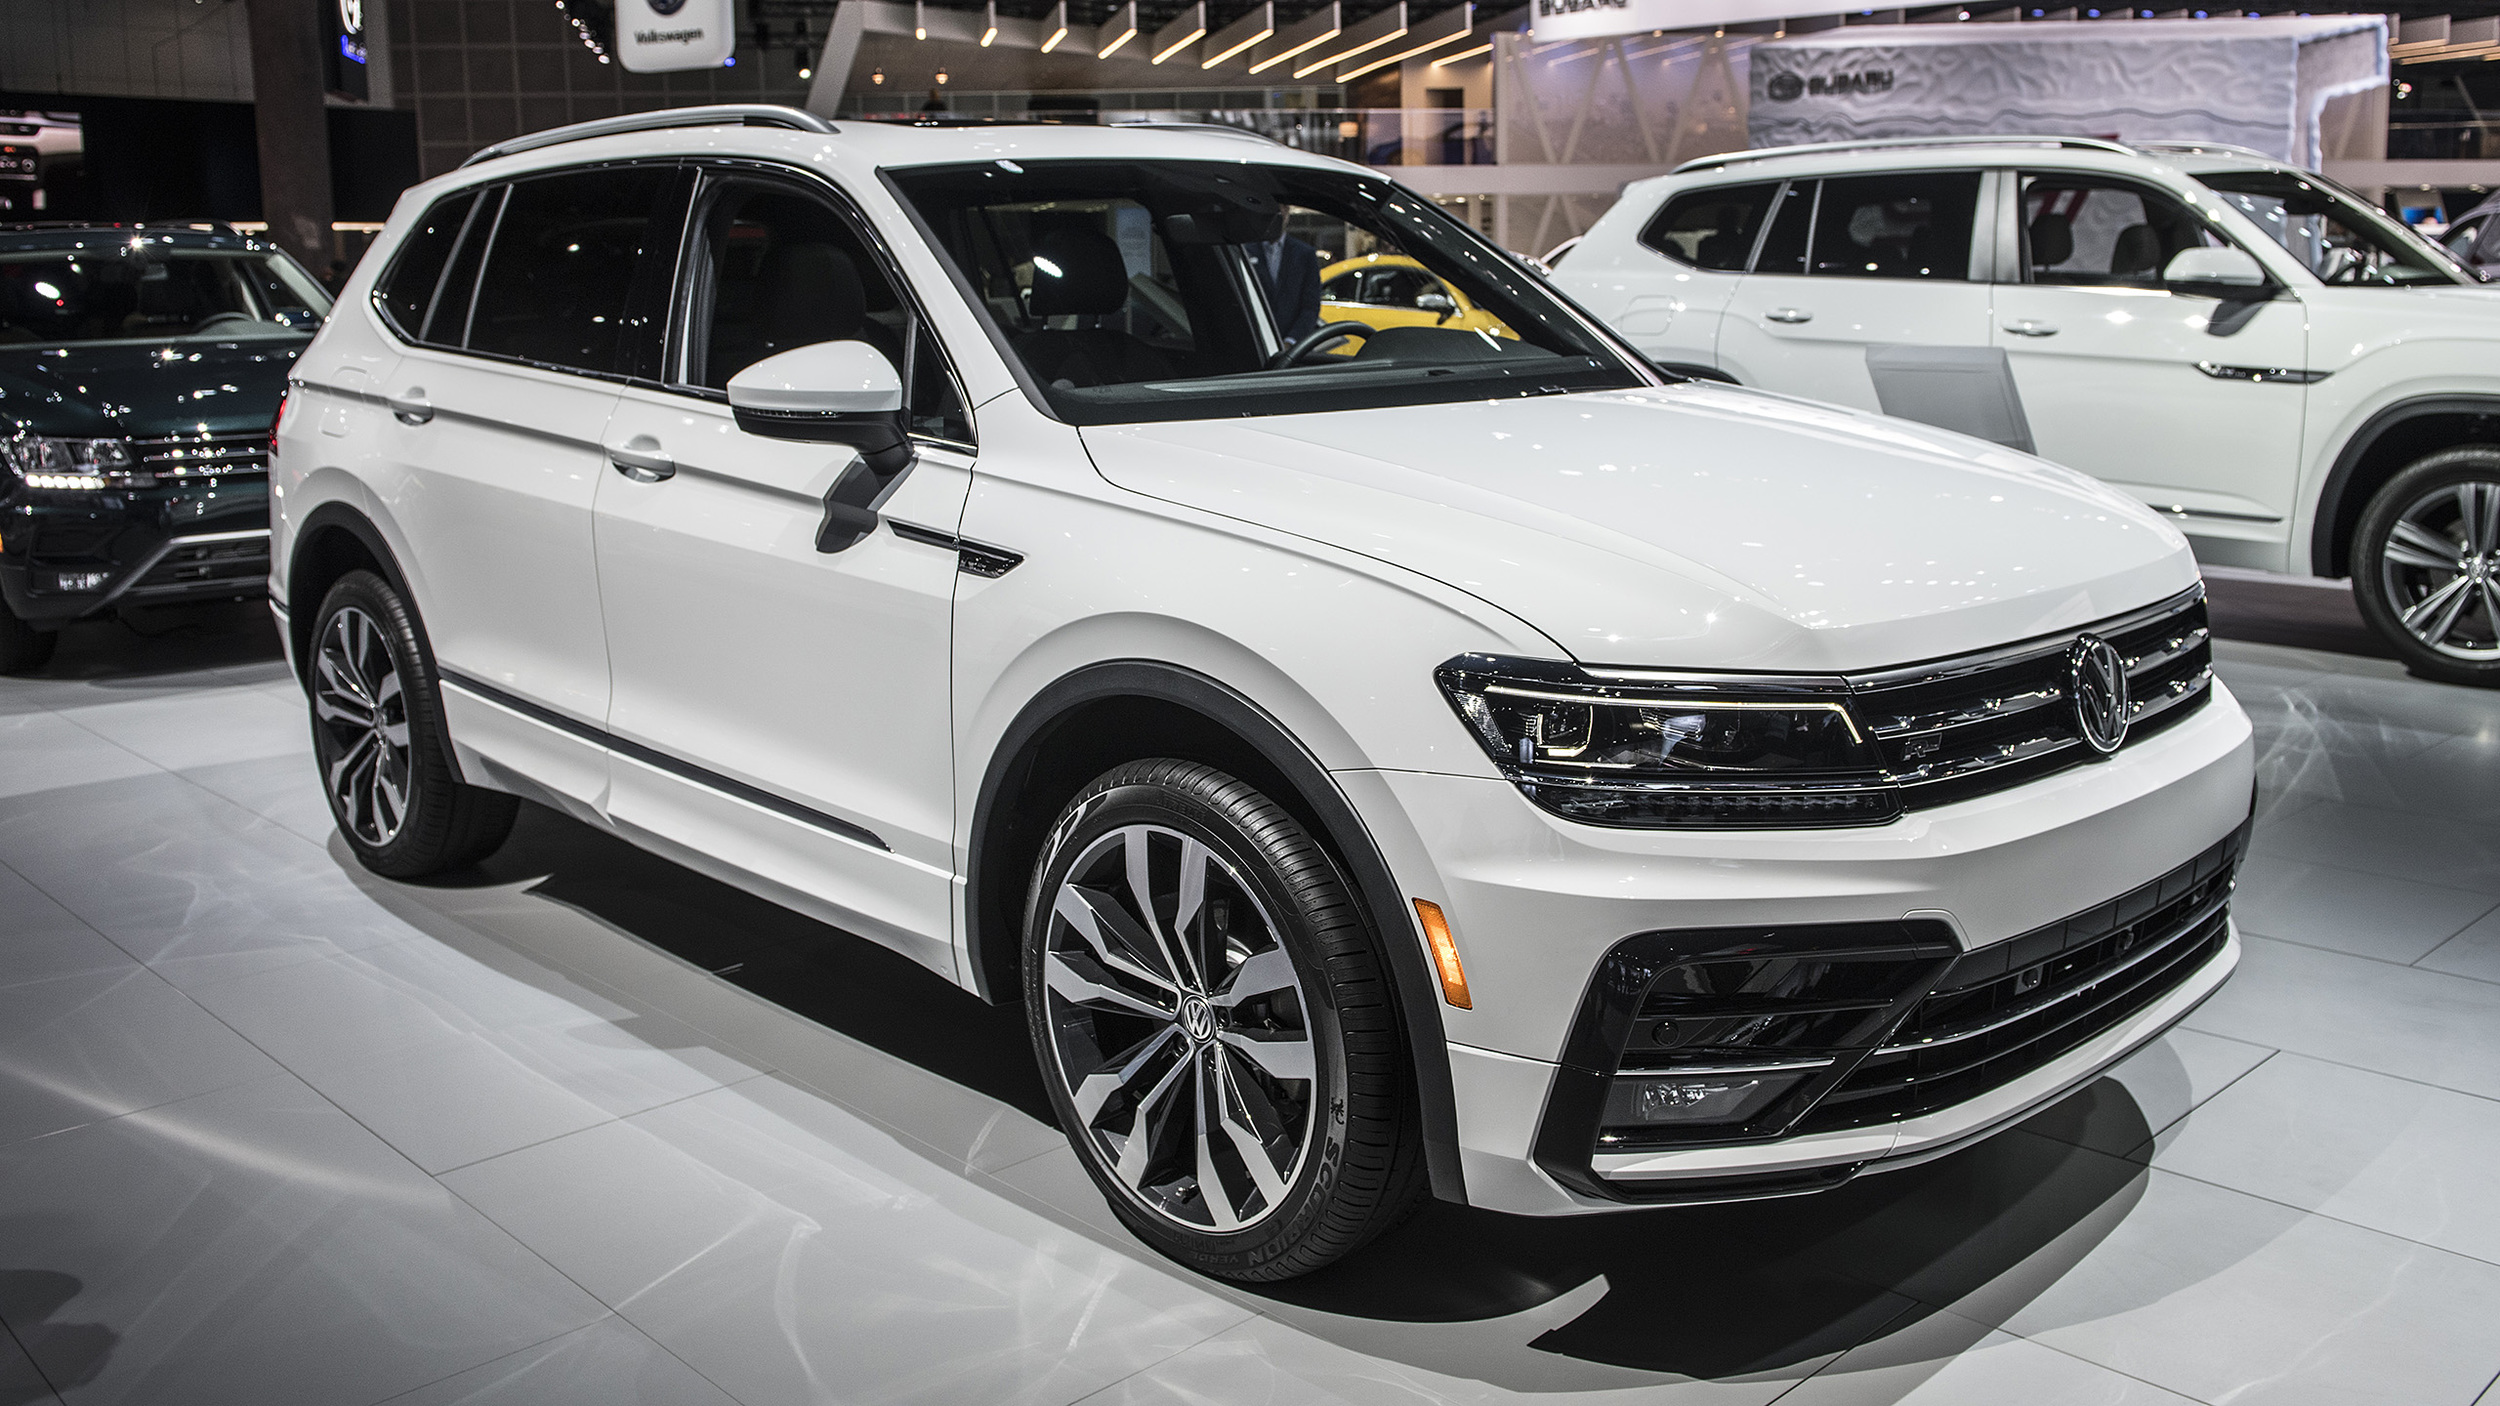 2018 volkswagen tiguan r line la 2017 autoblog. Black Bedroom Furniture Sets. Home Design Ideas